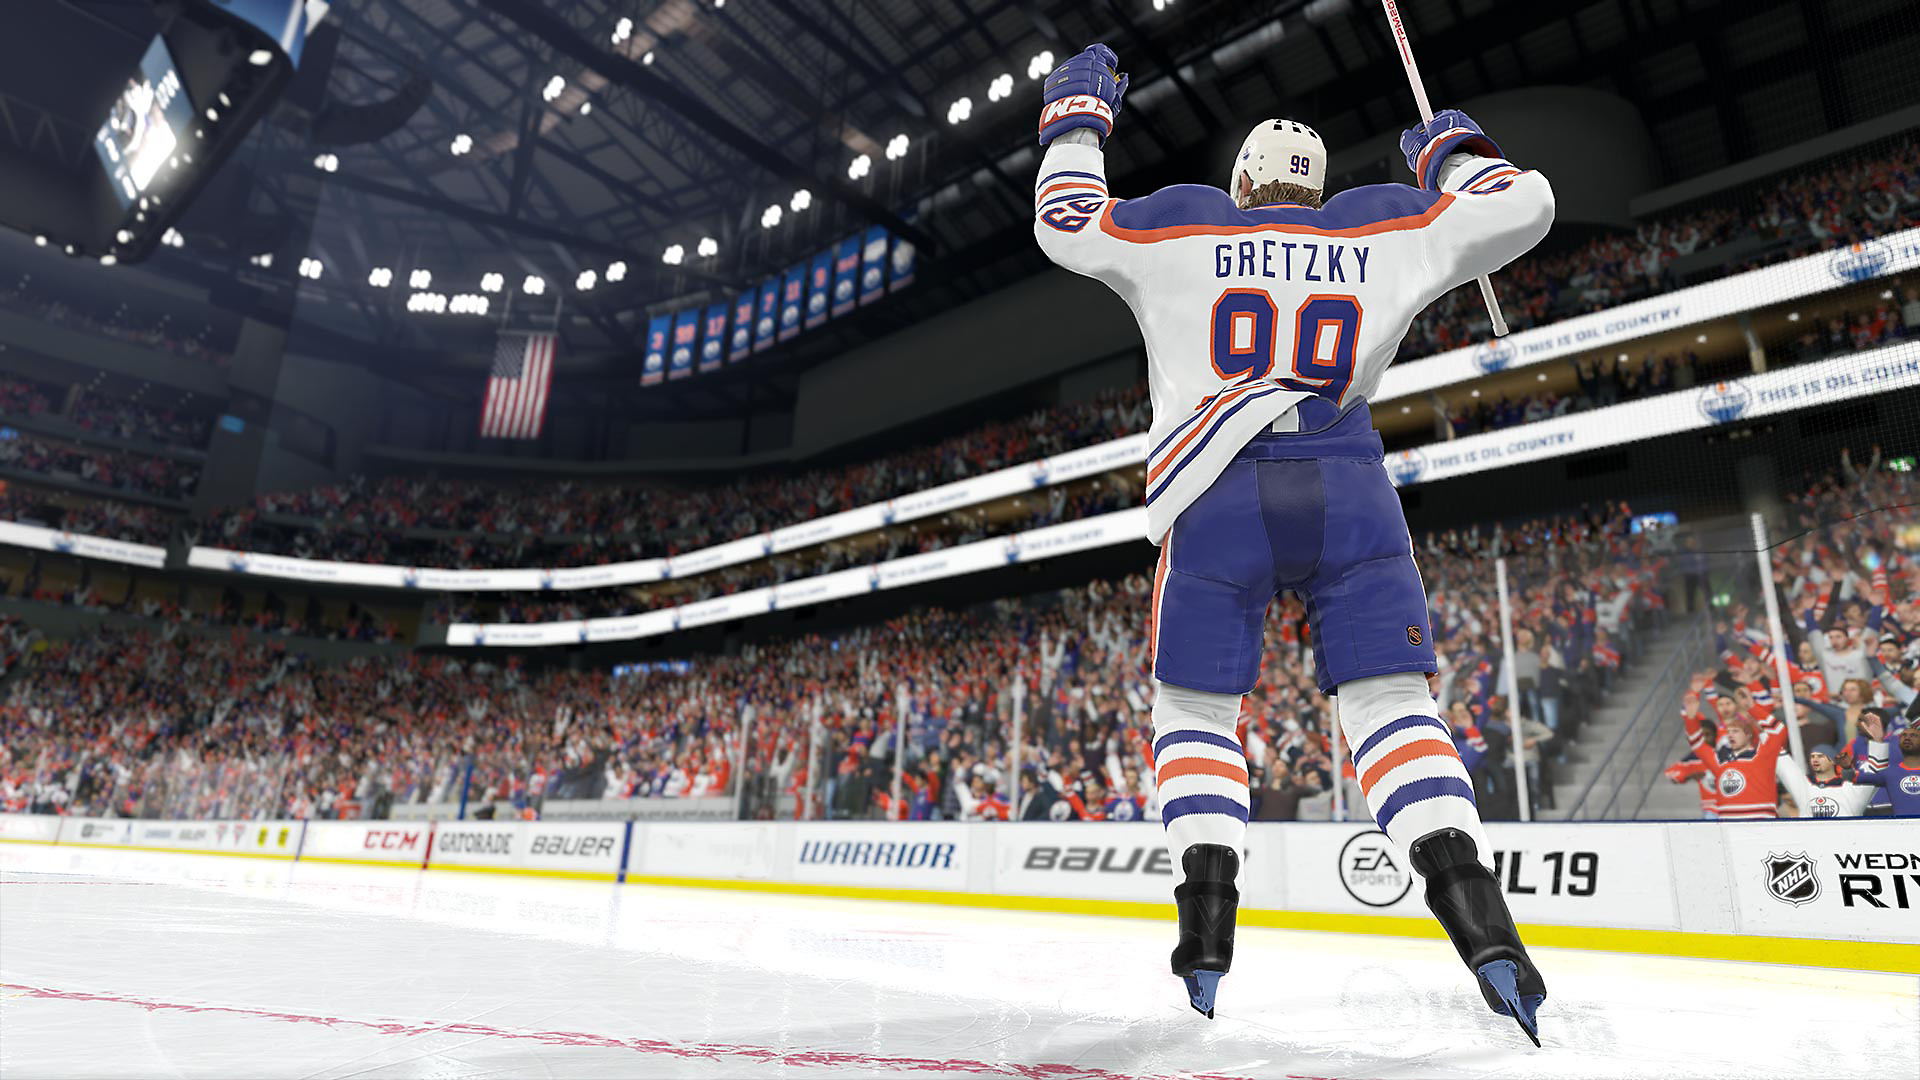 Leyendas de EA SPORTS NHL 19